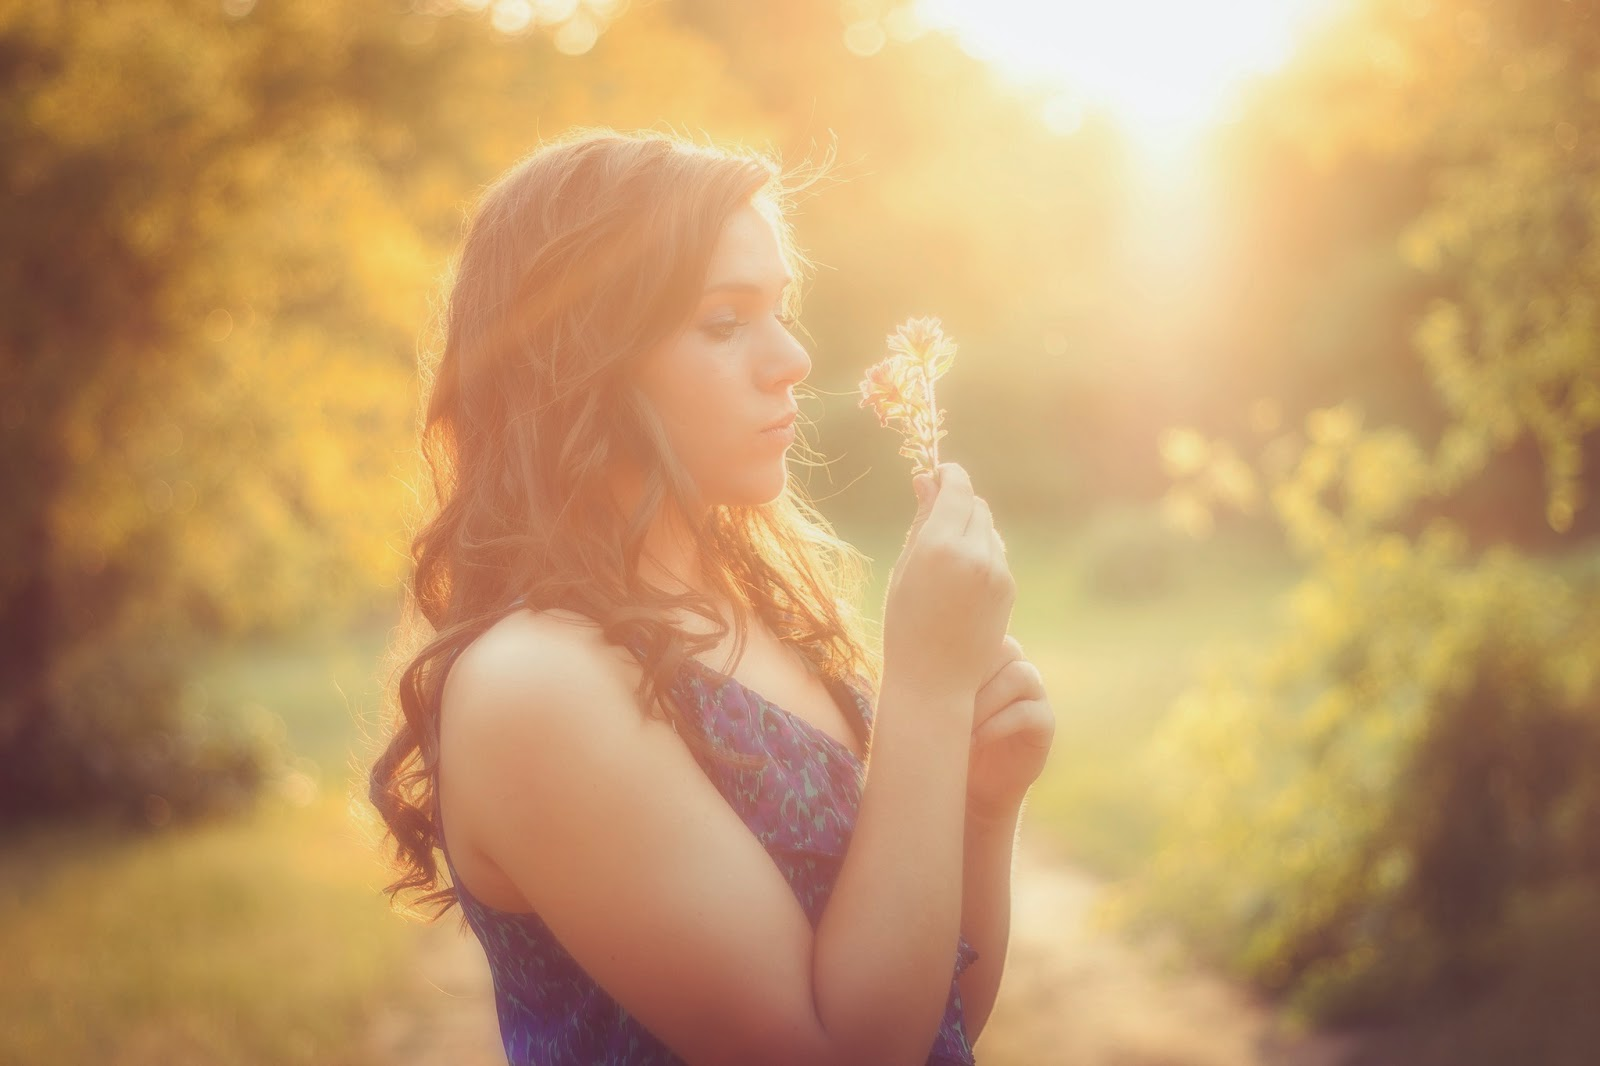 Girl looking at flowers at sunset